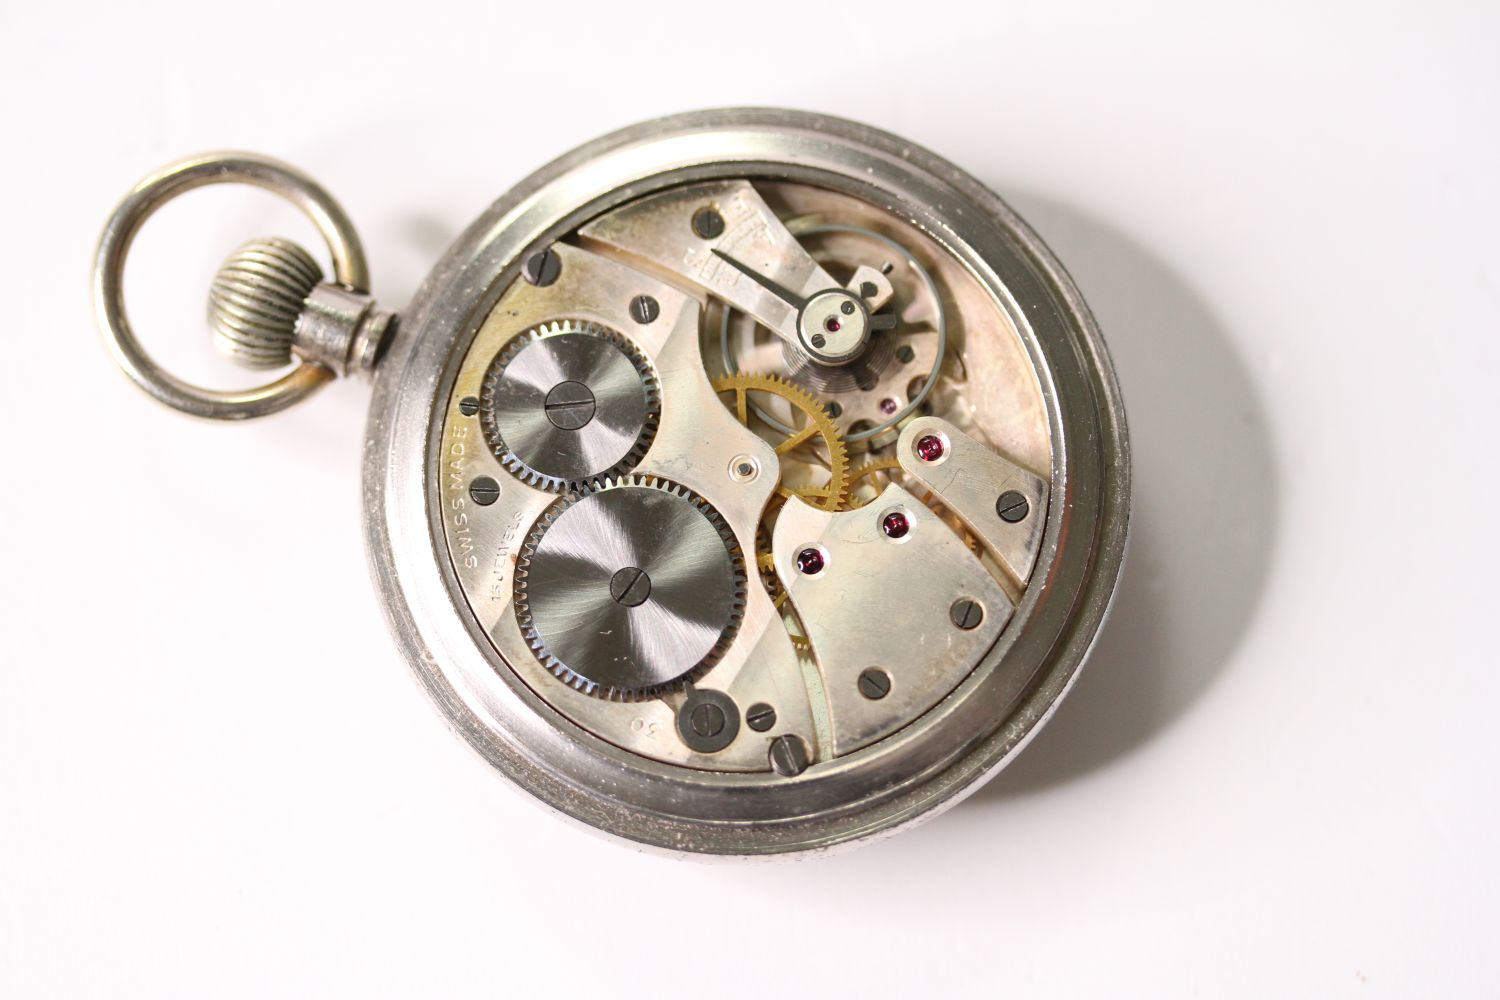 VINTAGE REVUE THOMMEN G.S.T.P MILITARY POCKET WATCH SERVICED, circular cream dial with arabic - Image 4 of 4